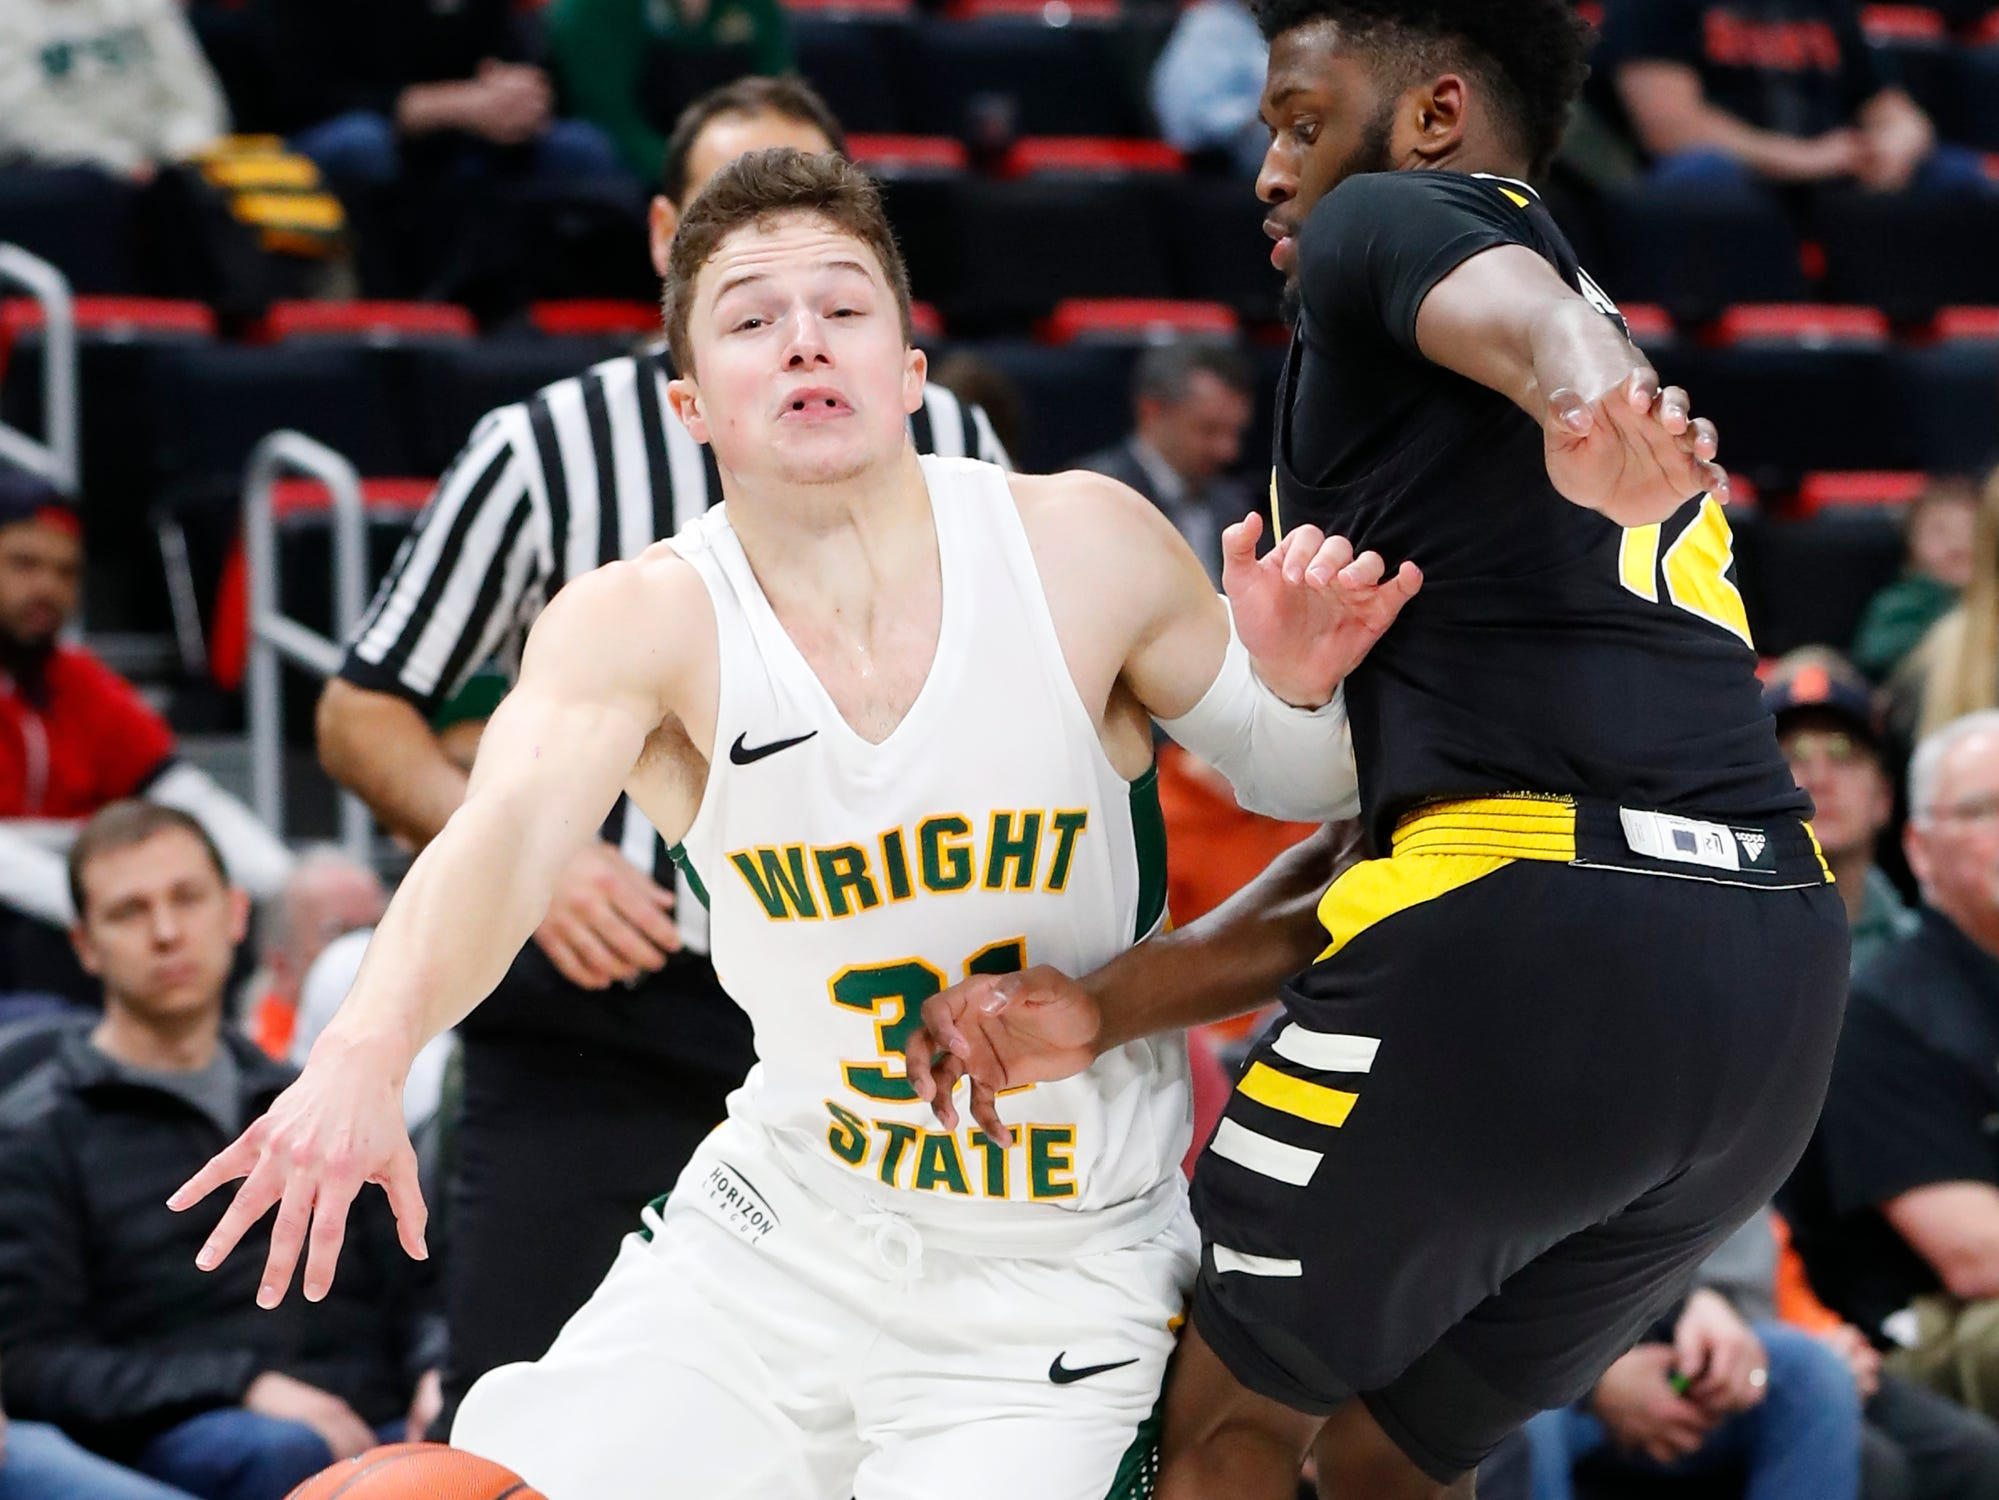 Wright State guard Cole Gentry (31) drives on Northern Kentucky guard Trevon Faulkner (12) in the first half of an NCAA men's basketball game in the Horizon League conference tournament championship in Detroit, Tuesday, March 12, 2019.